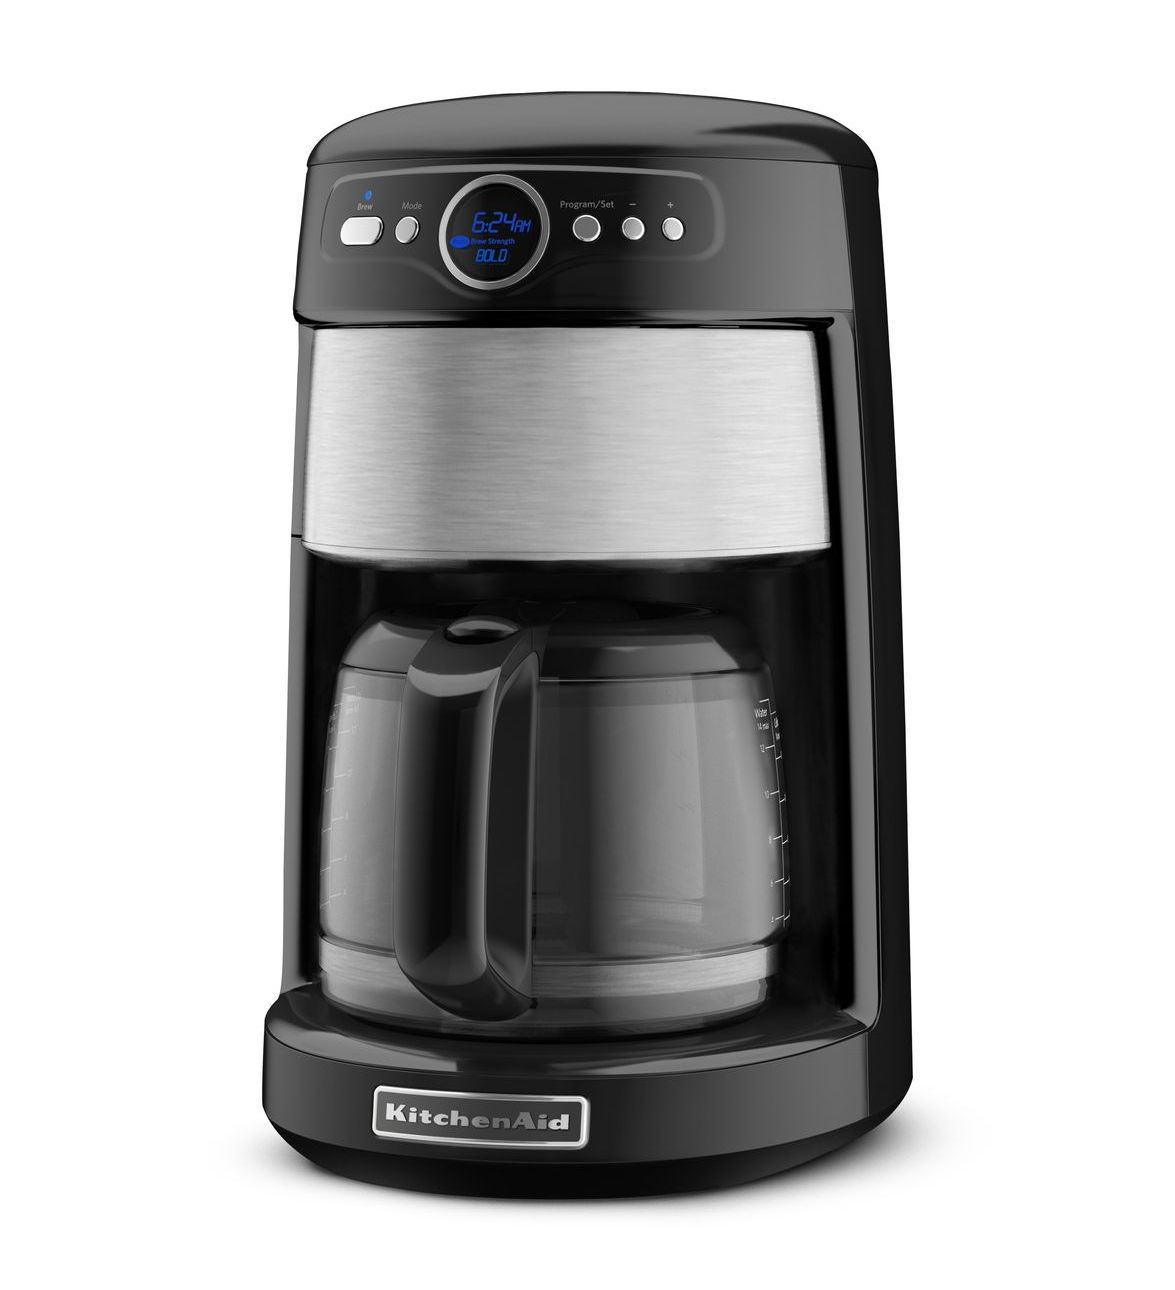 kitchenaid coffee maker 14 cup black - Kitchen Aid Coffee Maker